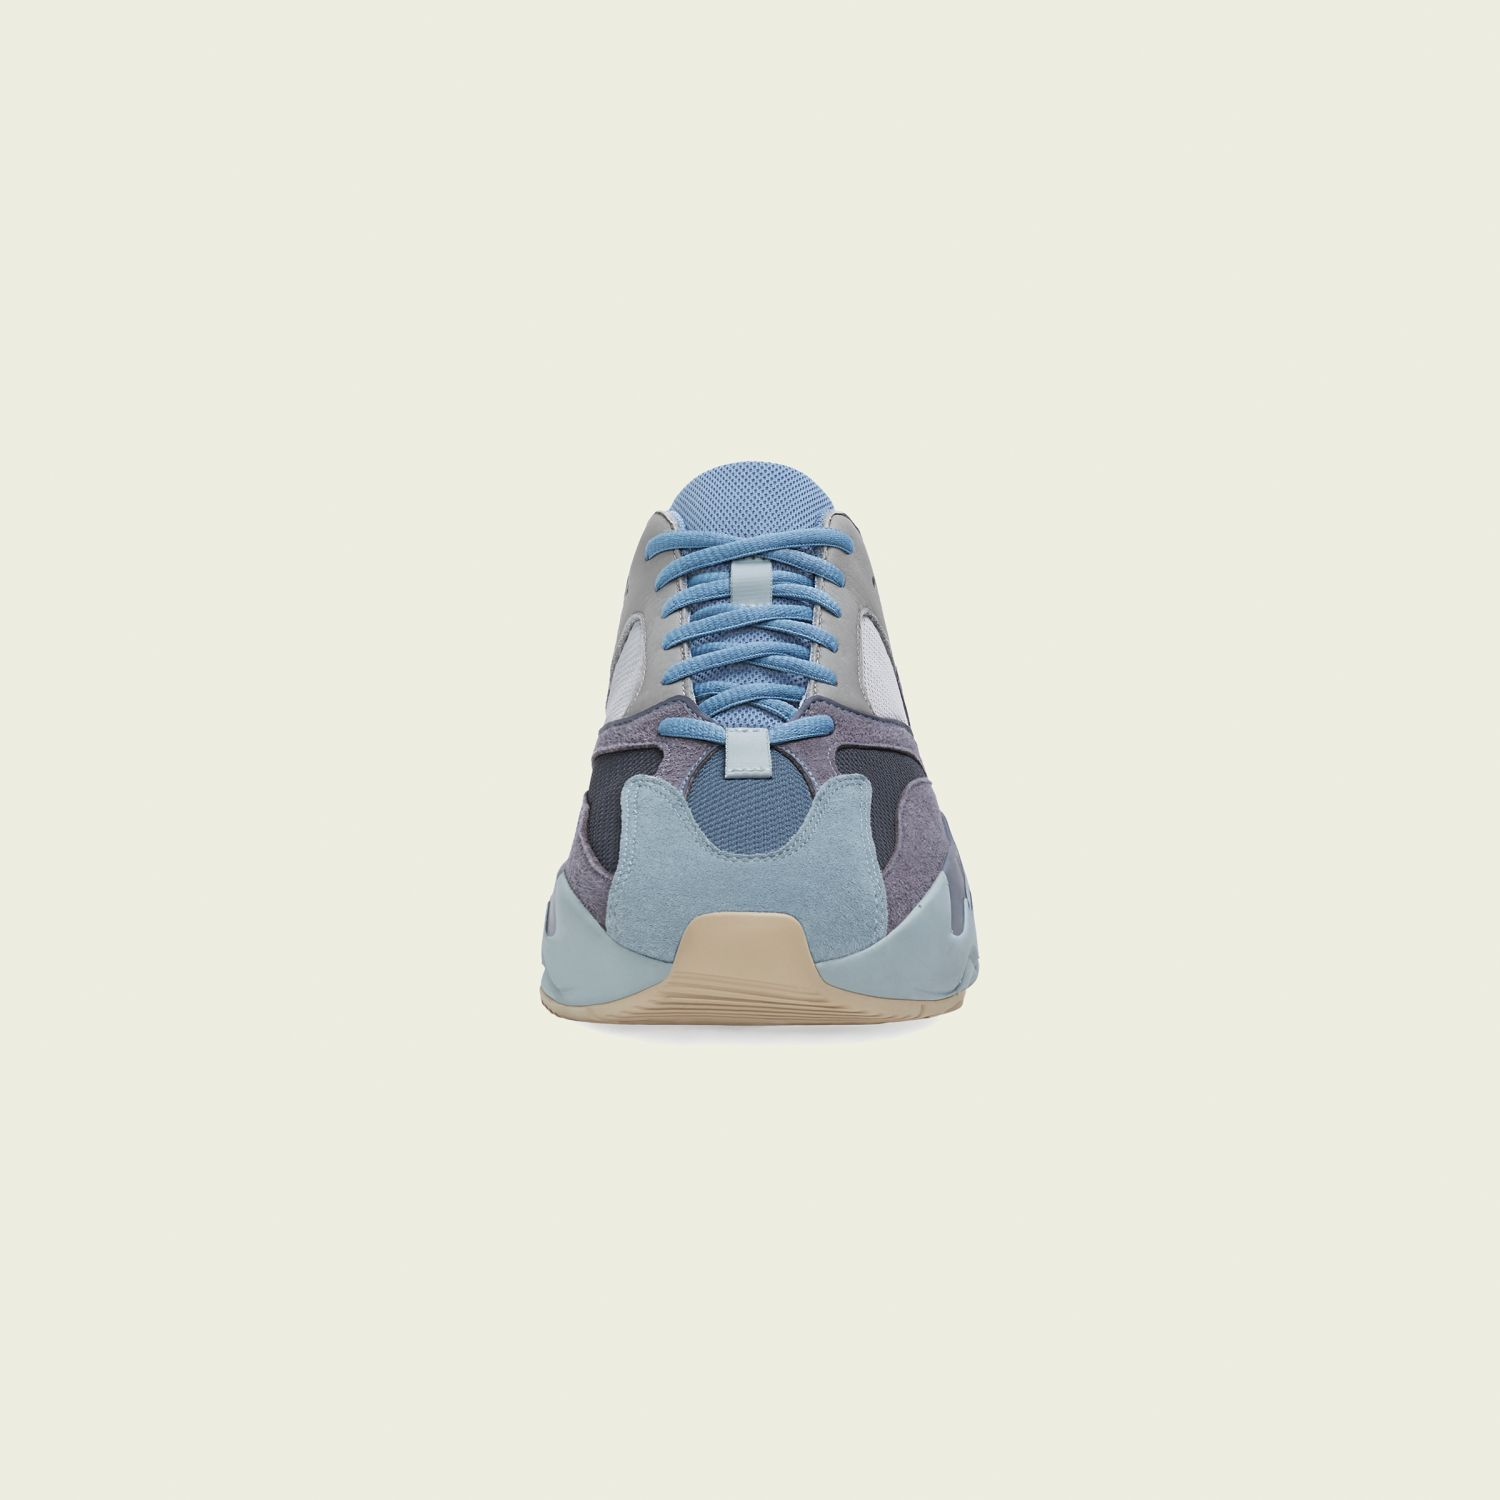 Yeezy Boost 700 Carbon Blue [4]